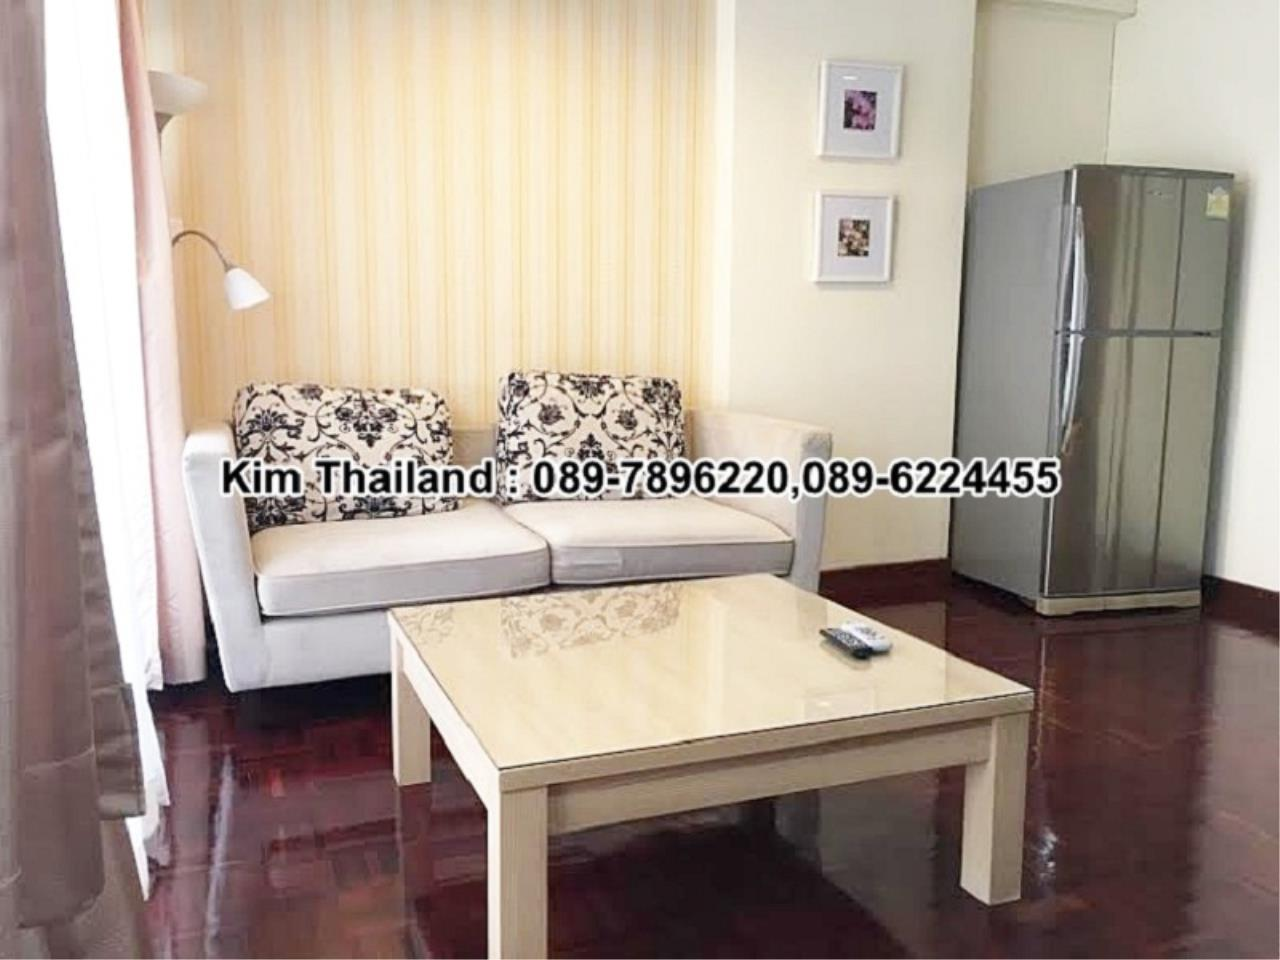 BKKcondorental Agency's For rent, Condo Saranjai Mansion. Area 63 sq.m. 1 bedroom. Rent 20,000baht/month 8